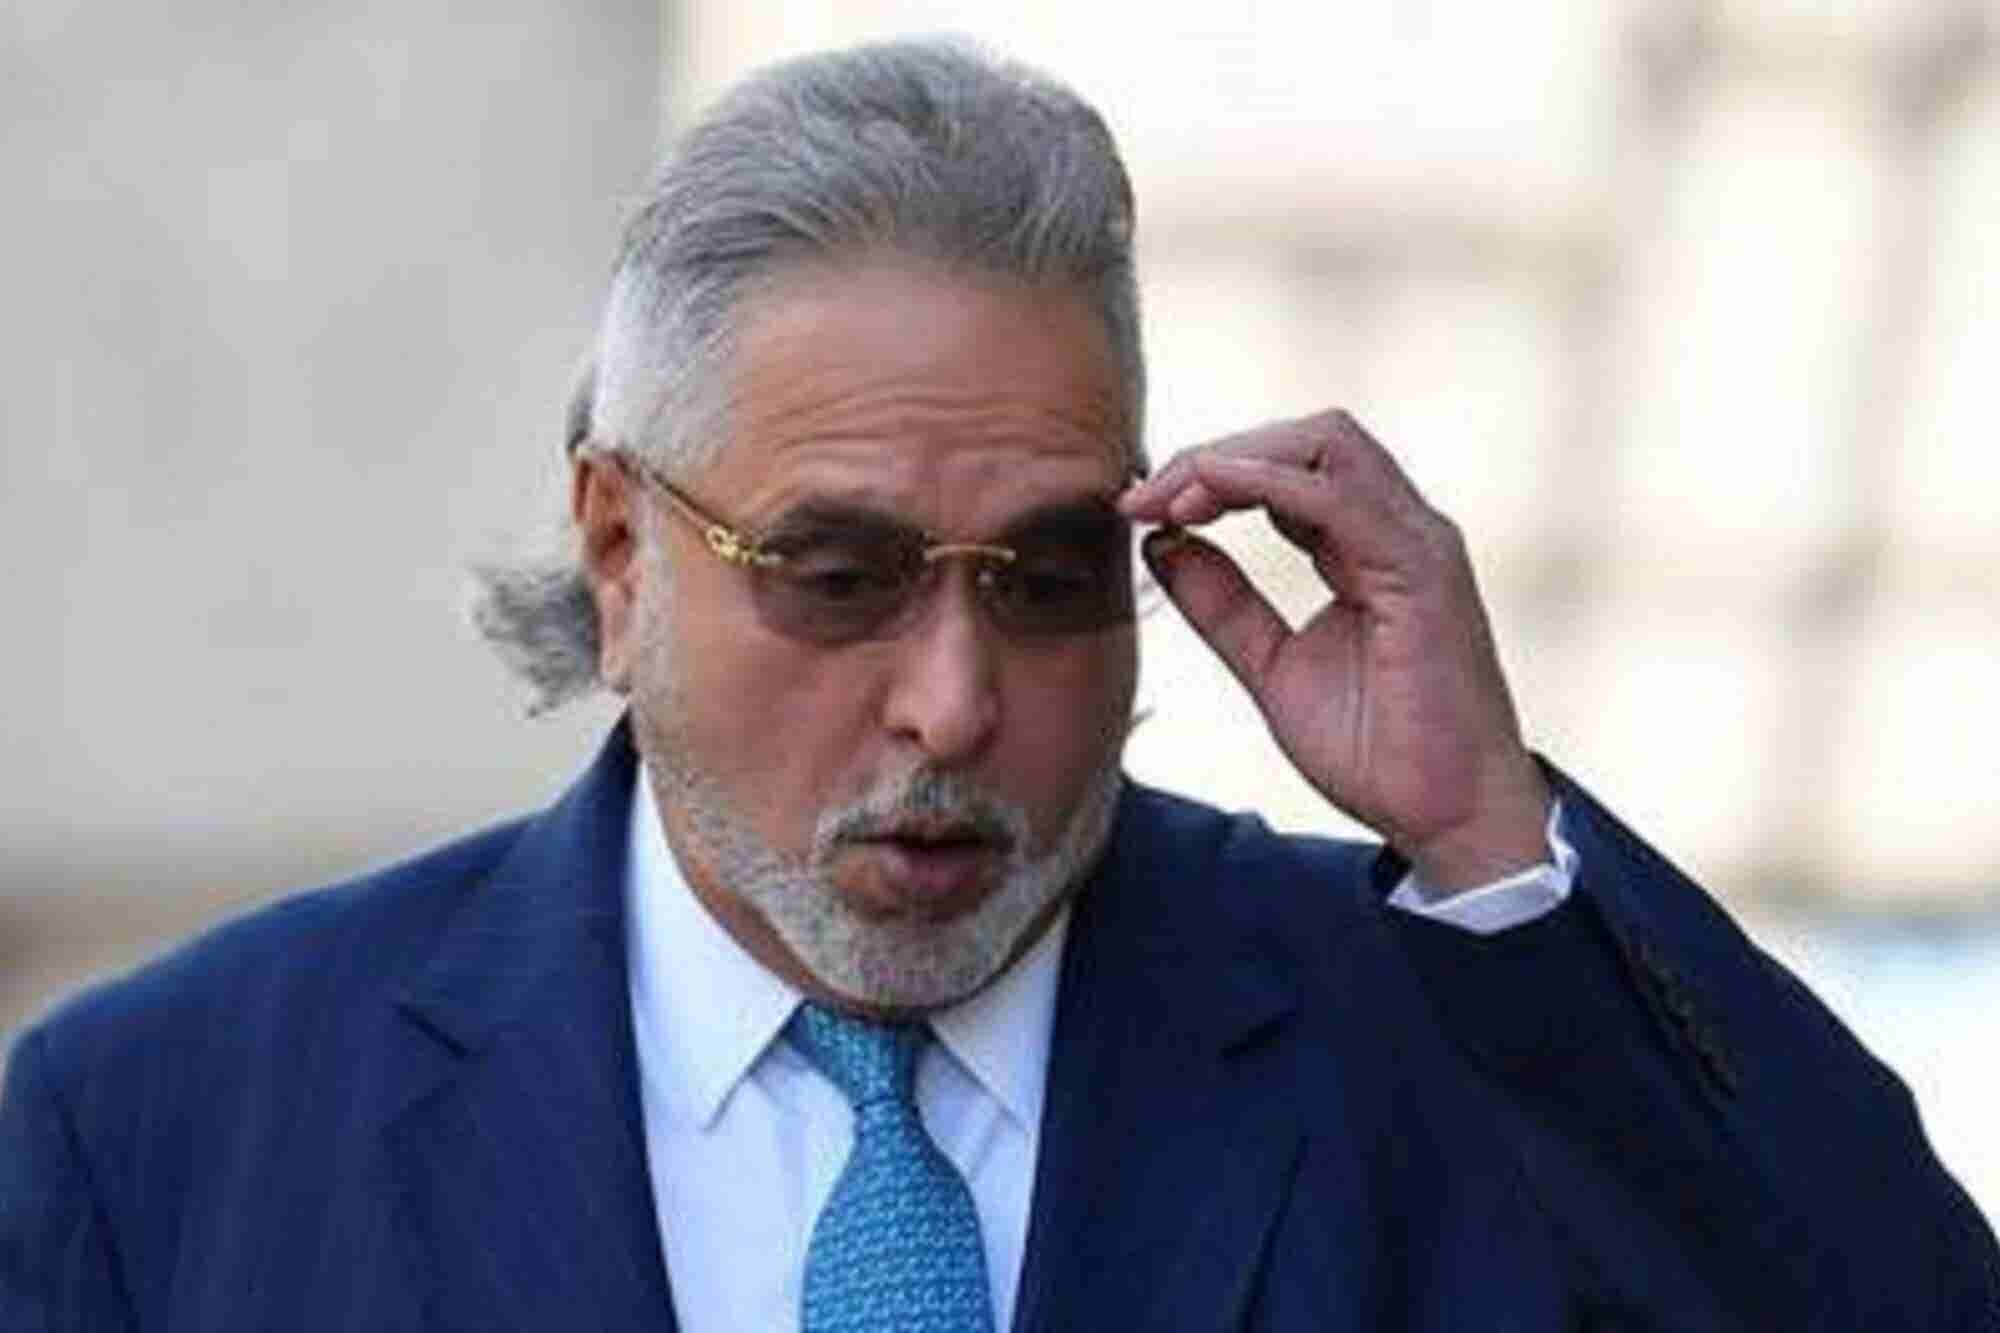 Fugitive Tycoon Vijay Mallya to be Extradited to India, Rules UK Court